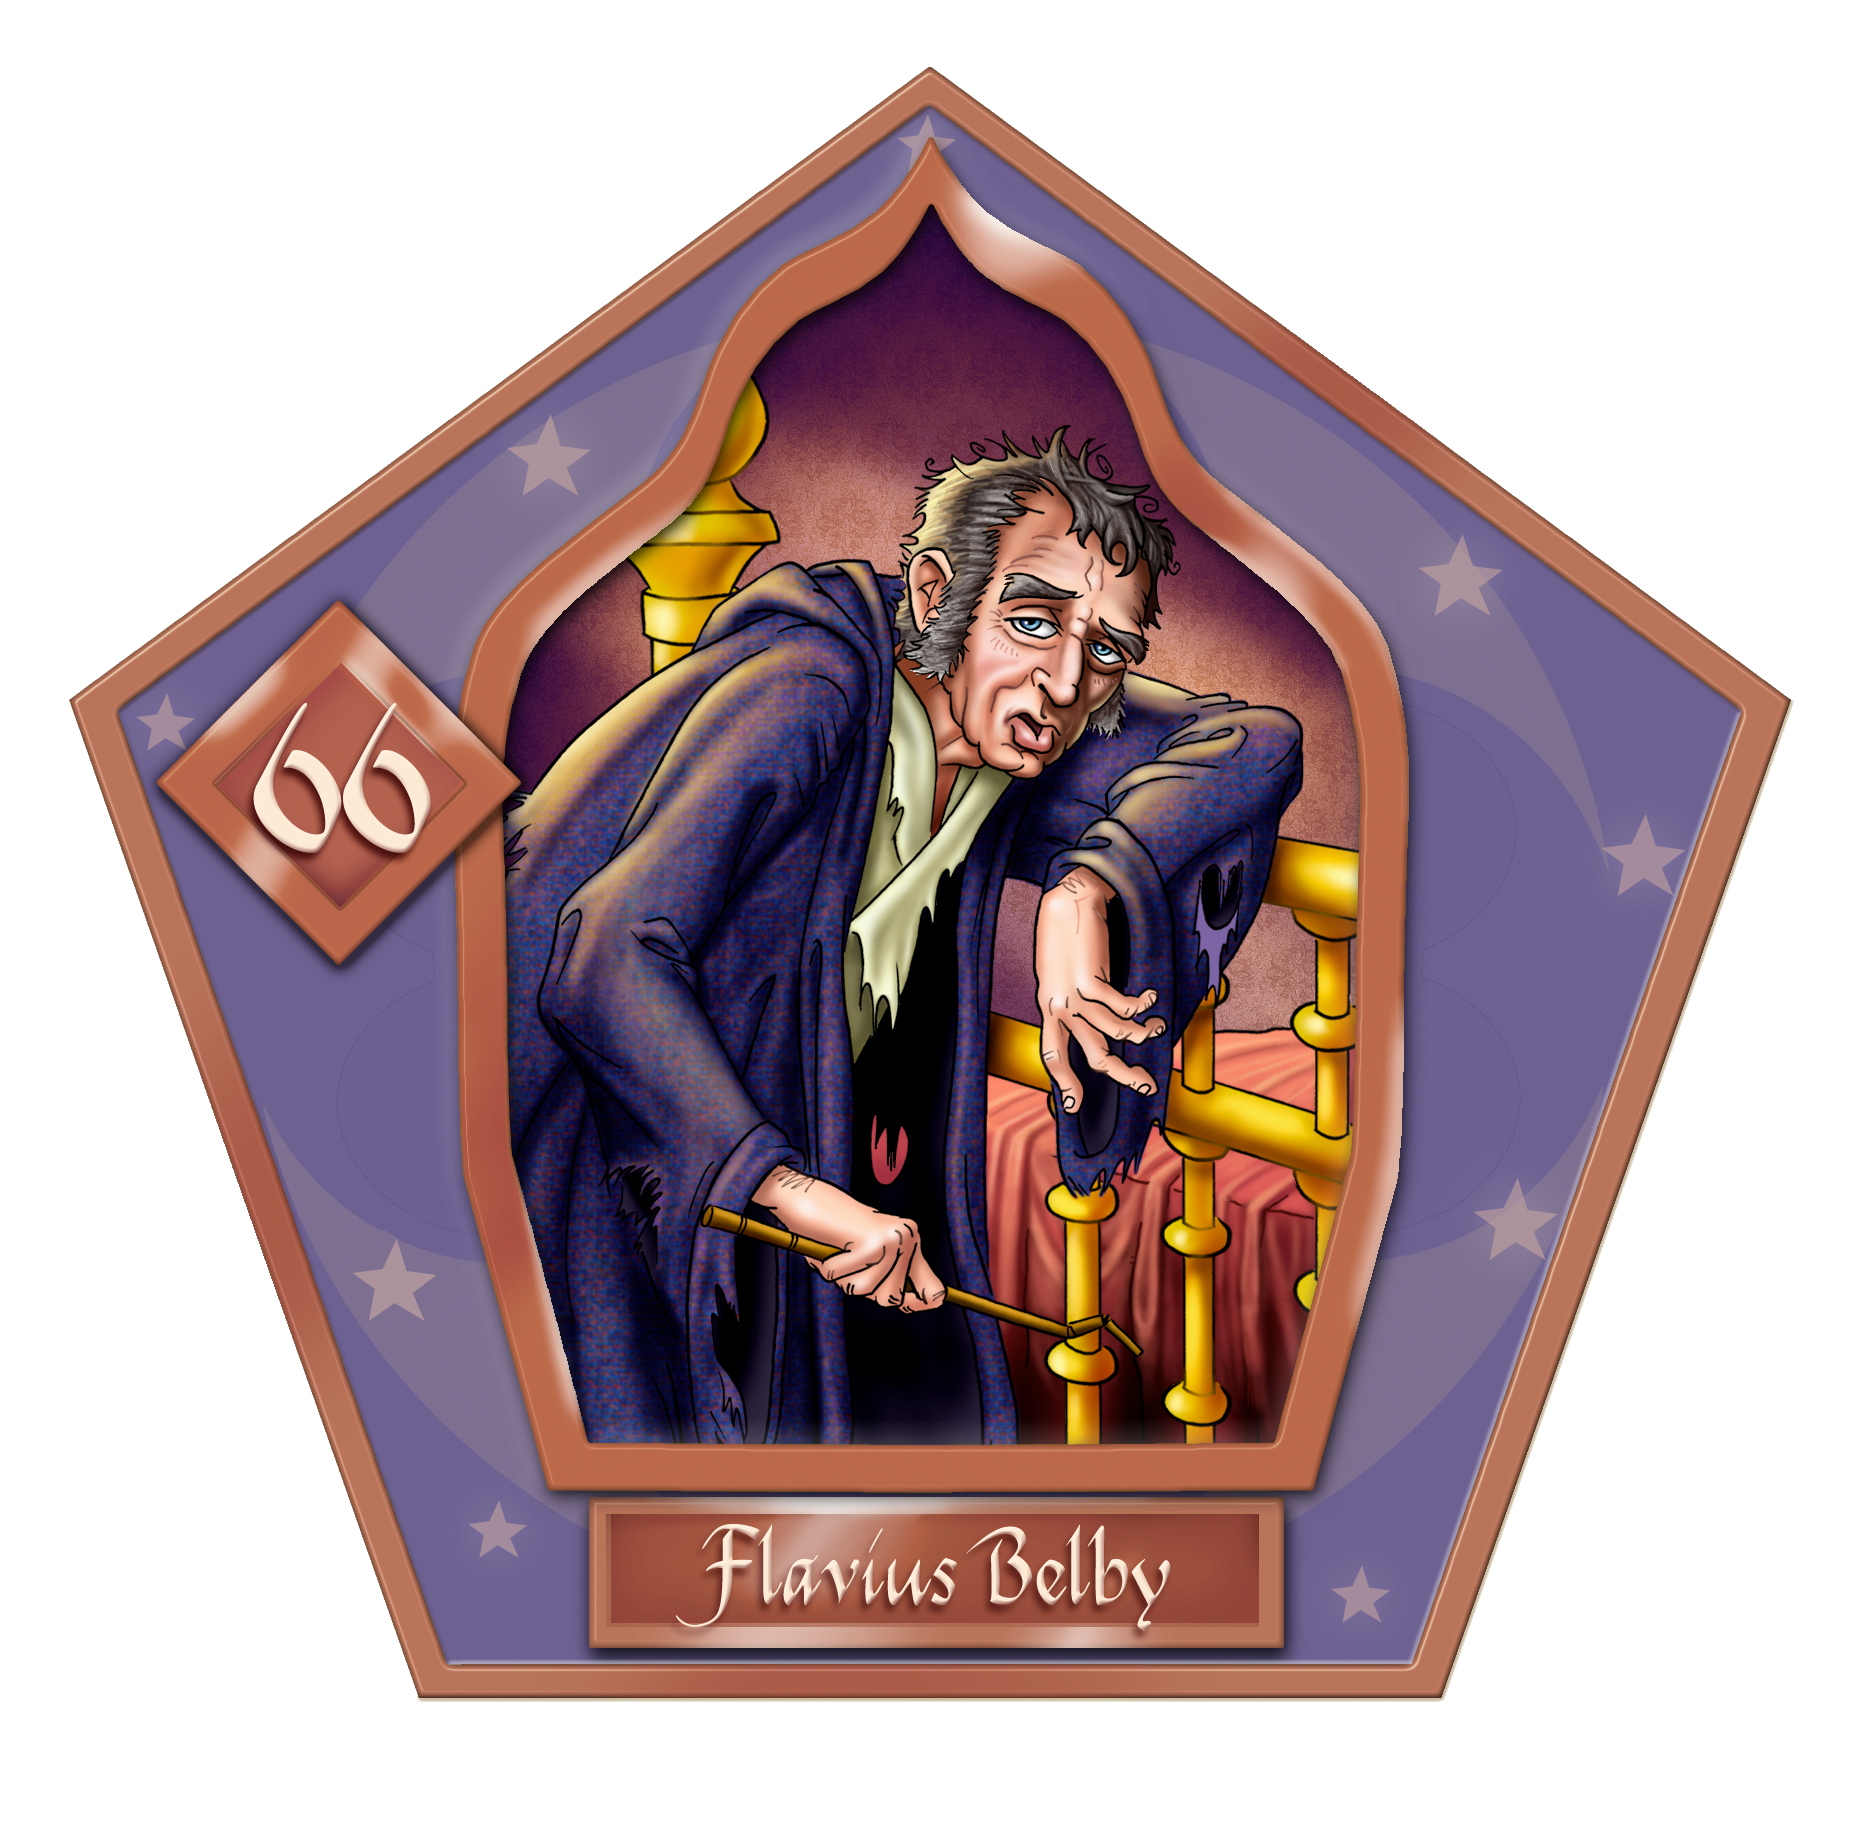 File:Flavius Belby-66-chocFrogCard.png